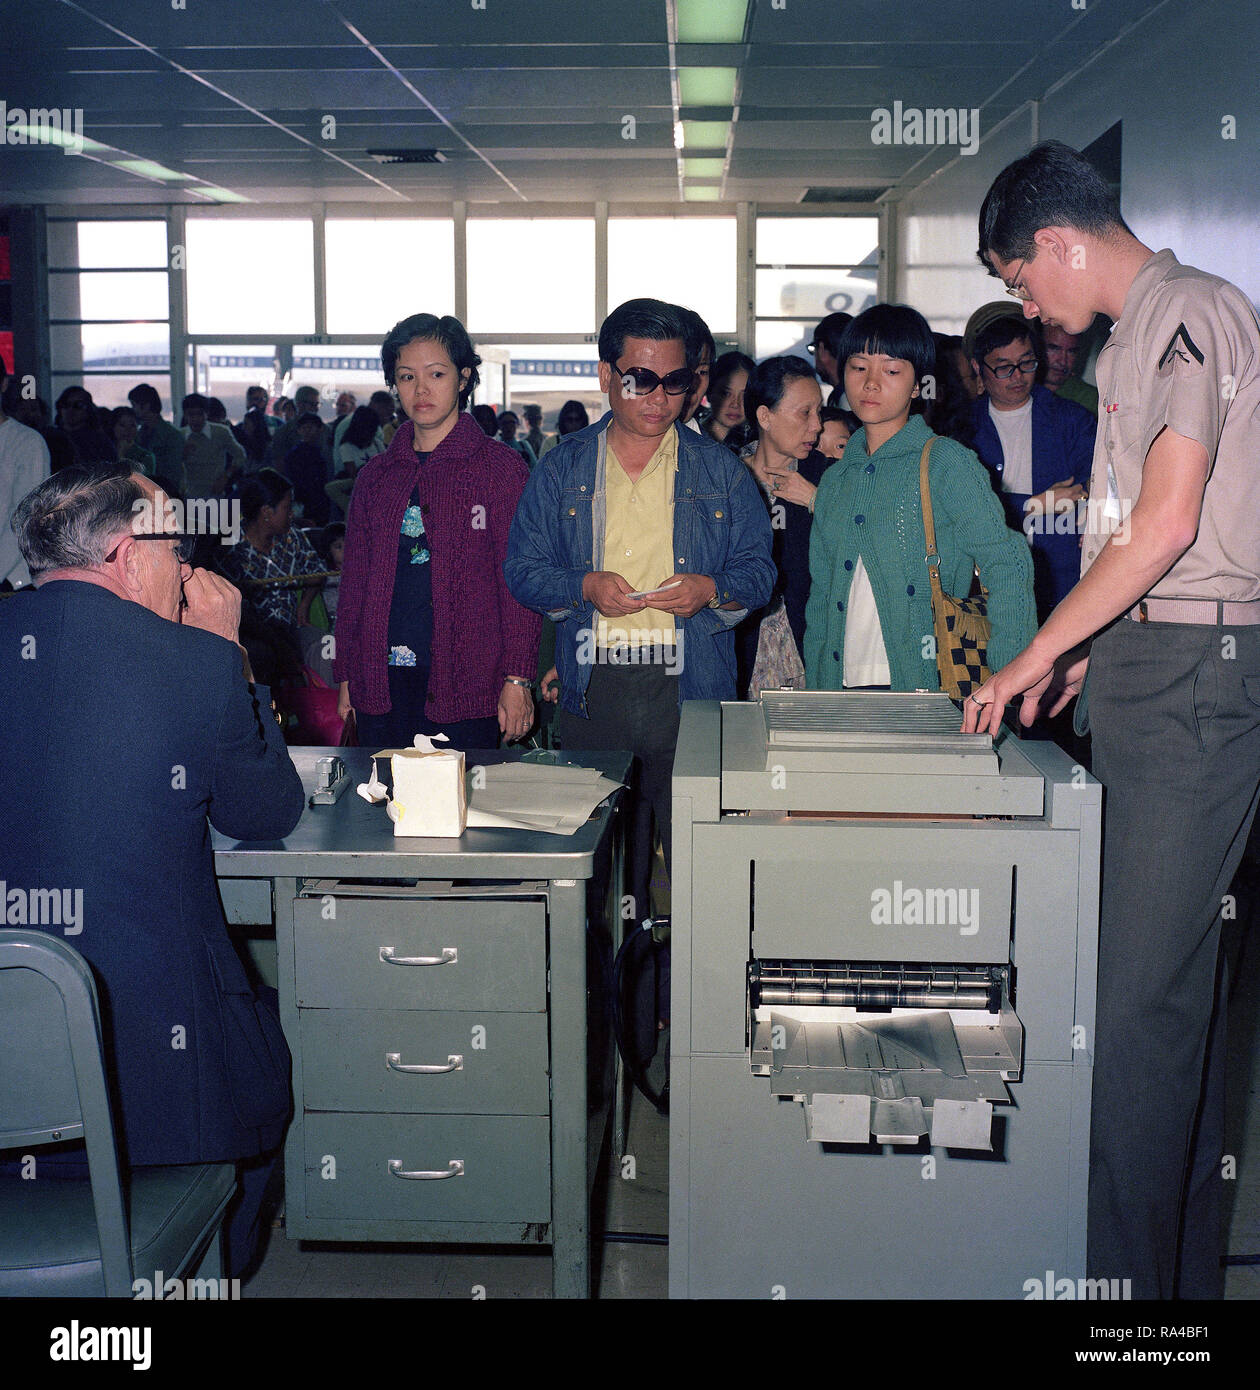 1975 - Vietnamese refugees evacuated from Saigon are processed at the air station passenger terminal before departing for Marine Corps Base, Camp Pendleton. Stock Photo